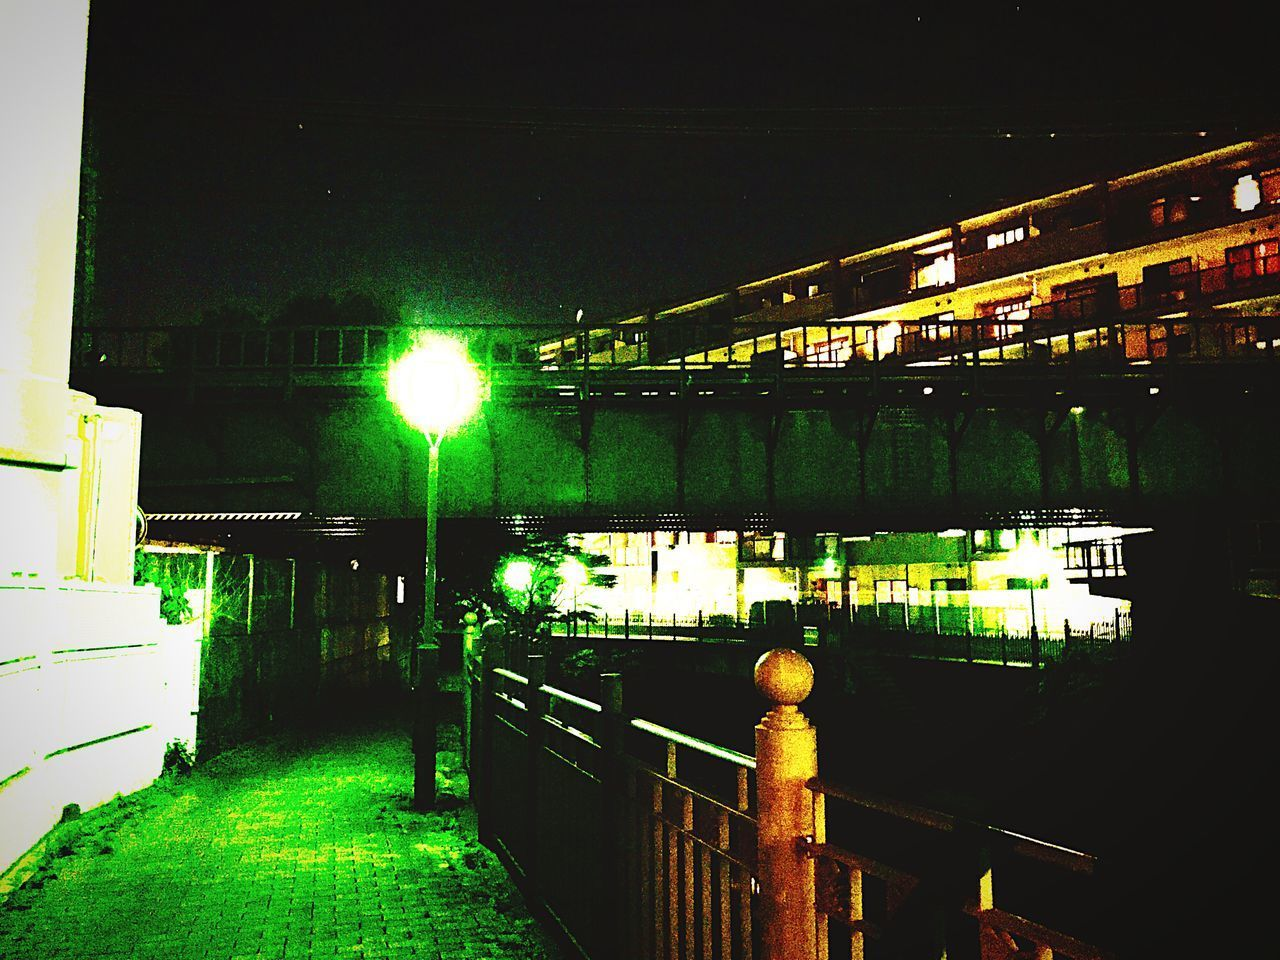 Night Illuminated Built Structure Bridge - Man Made Structure Green Color Connection Architecture Outdoors No People Water Building Exterior Nature Sky まーだ、ダイエット始めなきゃ。。